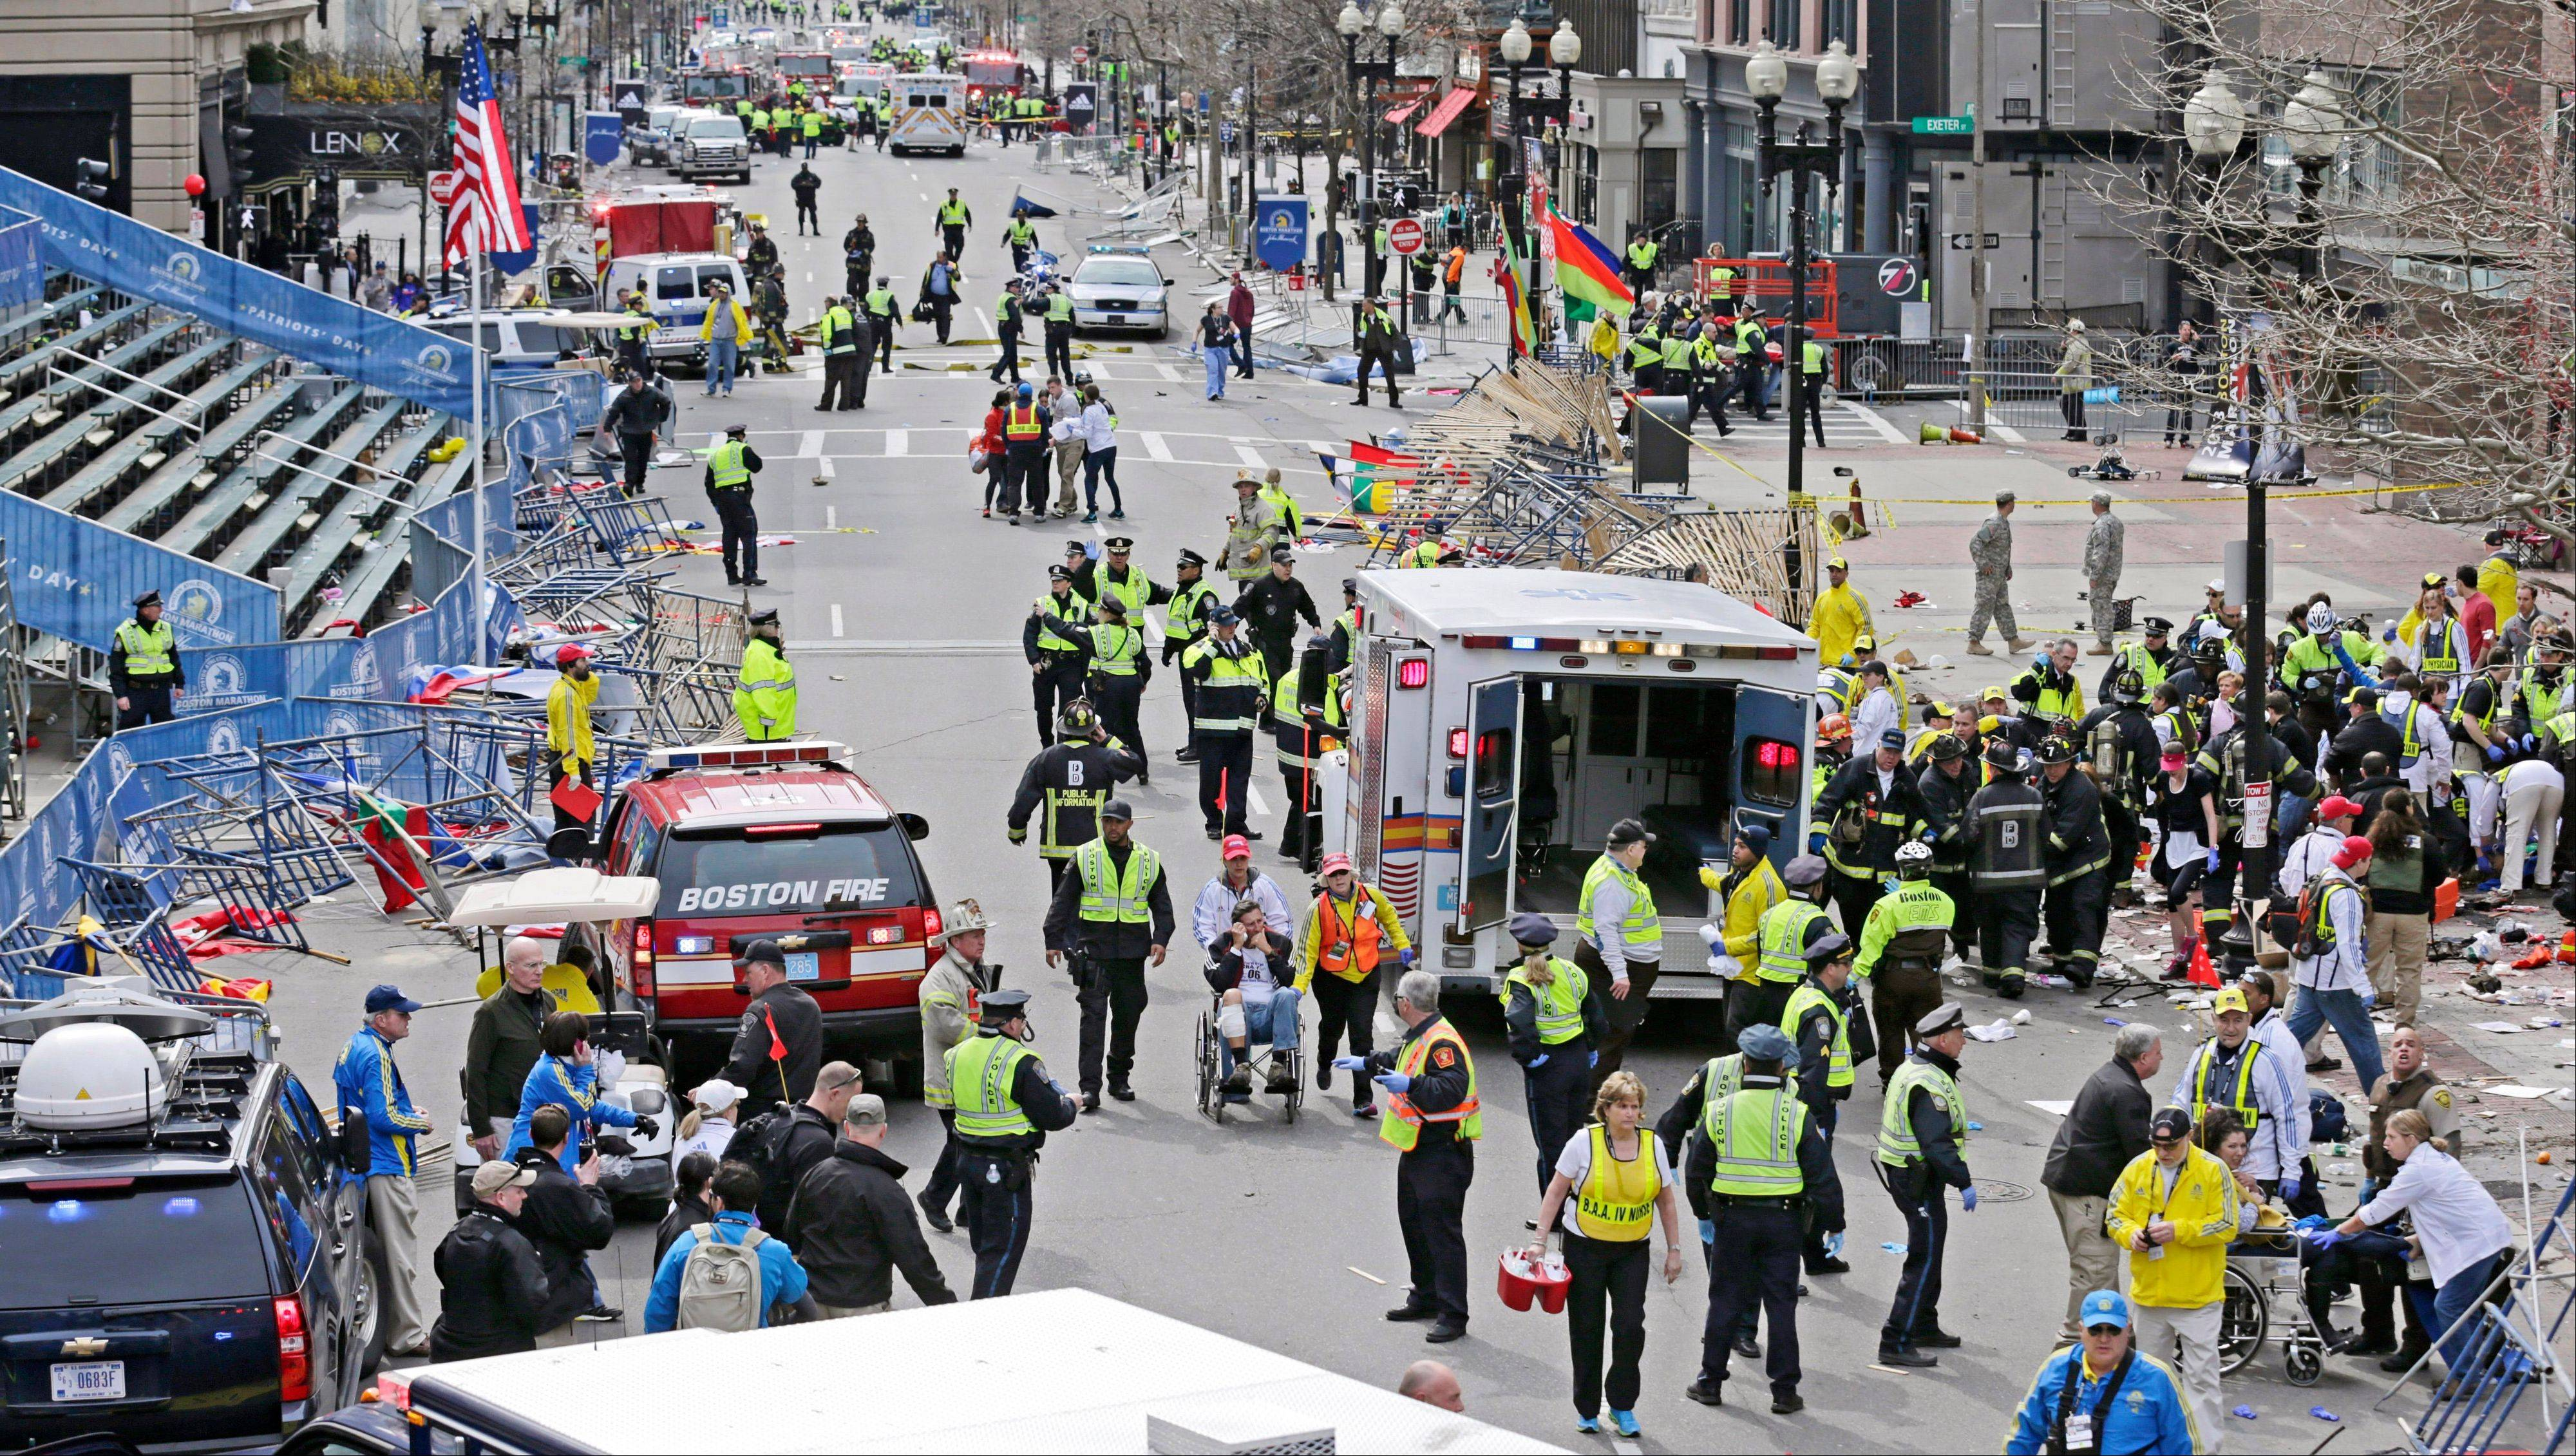 Medical workers aid injured people at the finish line of the 2013 Boston Marathon following explosions in Boston, April 15. Two explosions shattered the euphoria of the Boston Marathon finish line on Monday, sending authorities out on the course to carry off the injured while the stragglers were rerouted away from the smoking site of the blasts.